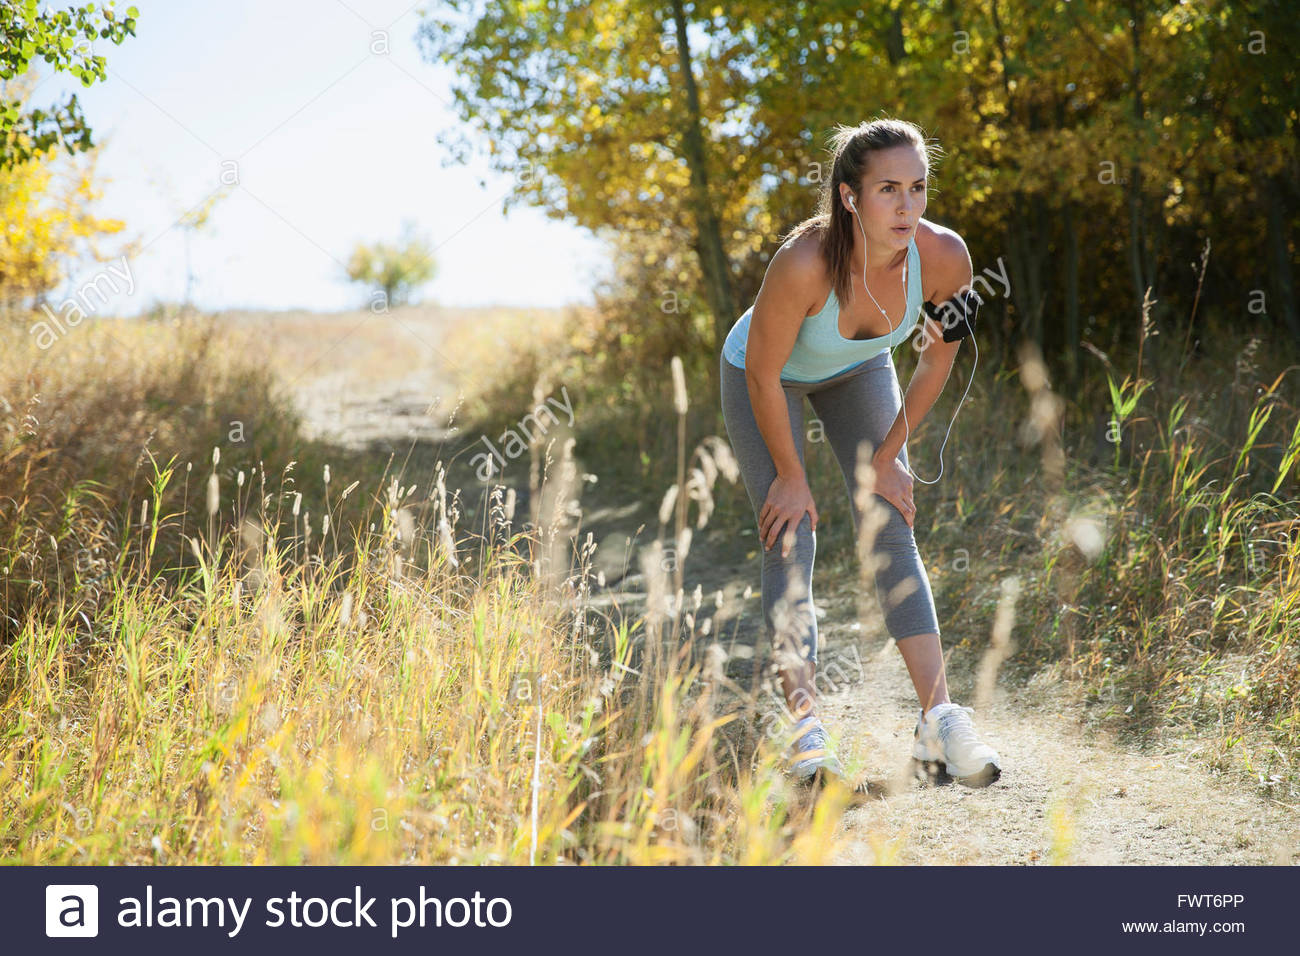 Woman stopping to stretch during outdoor run. - Stock Image